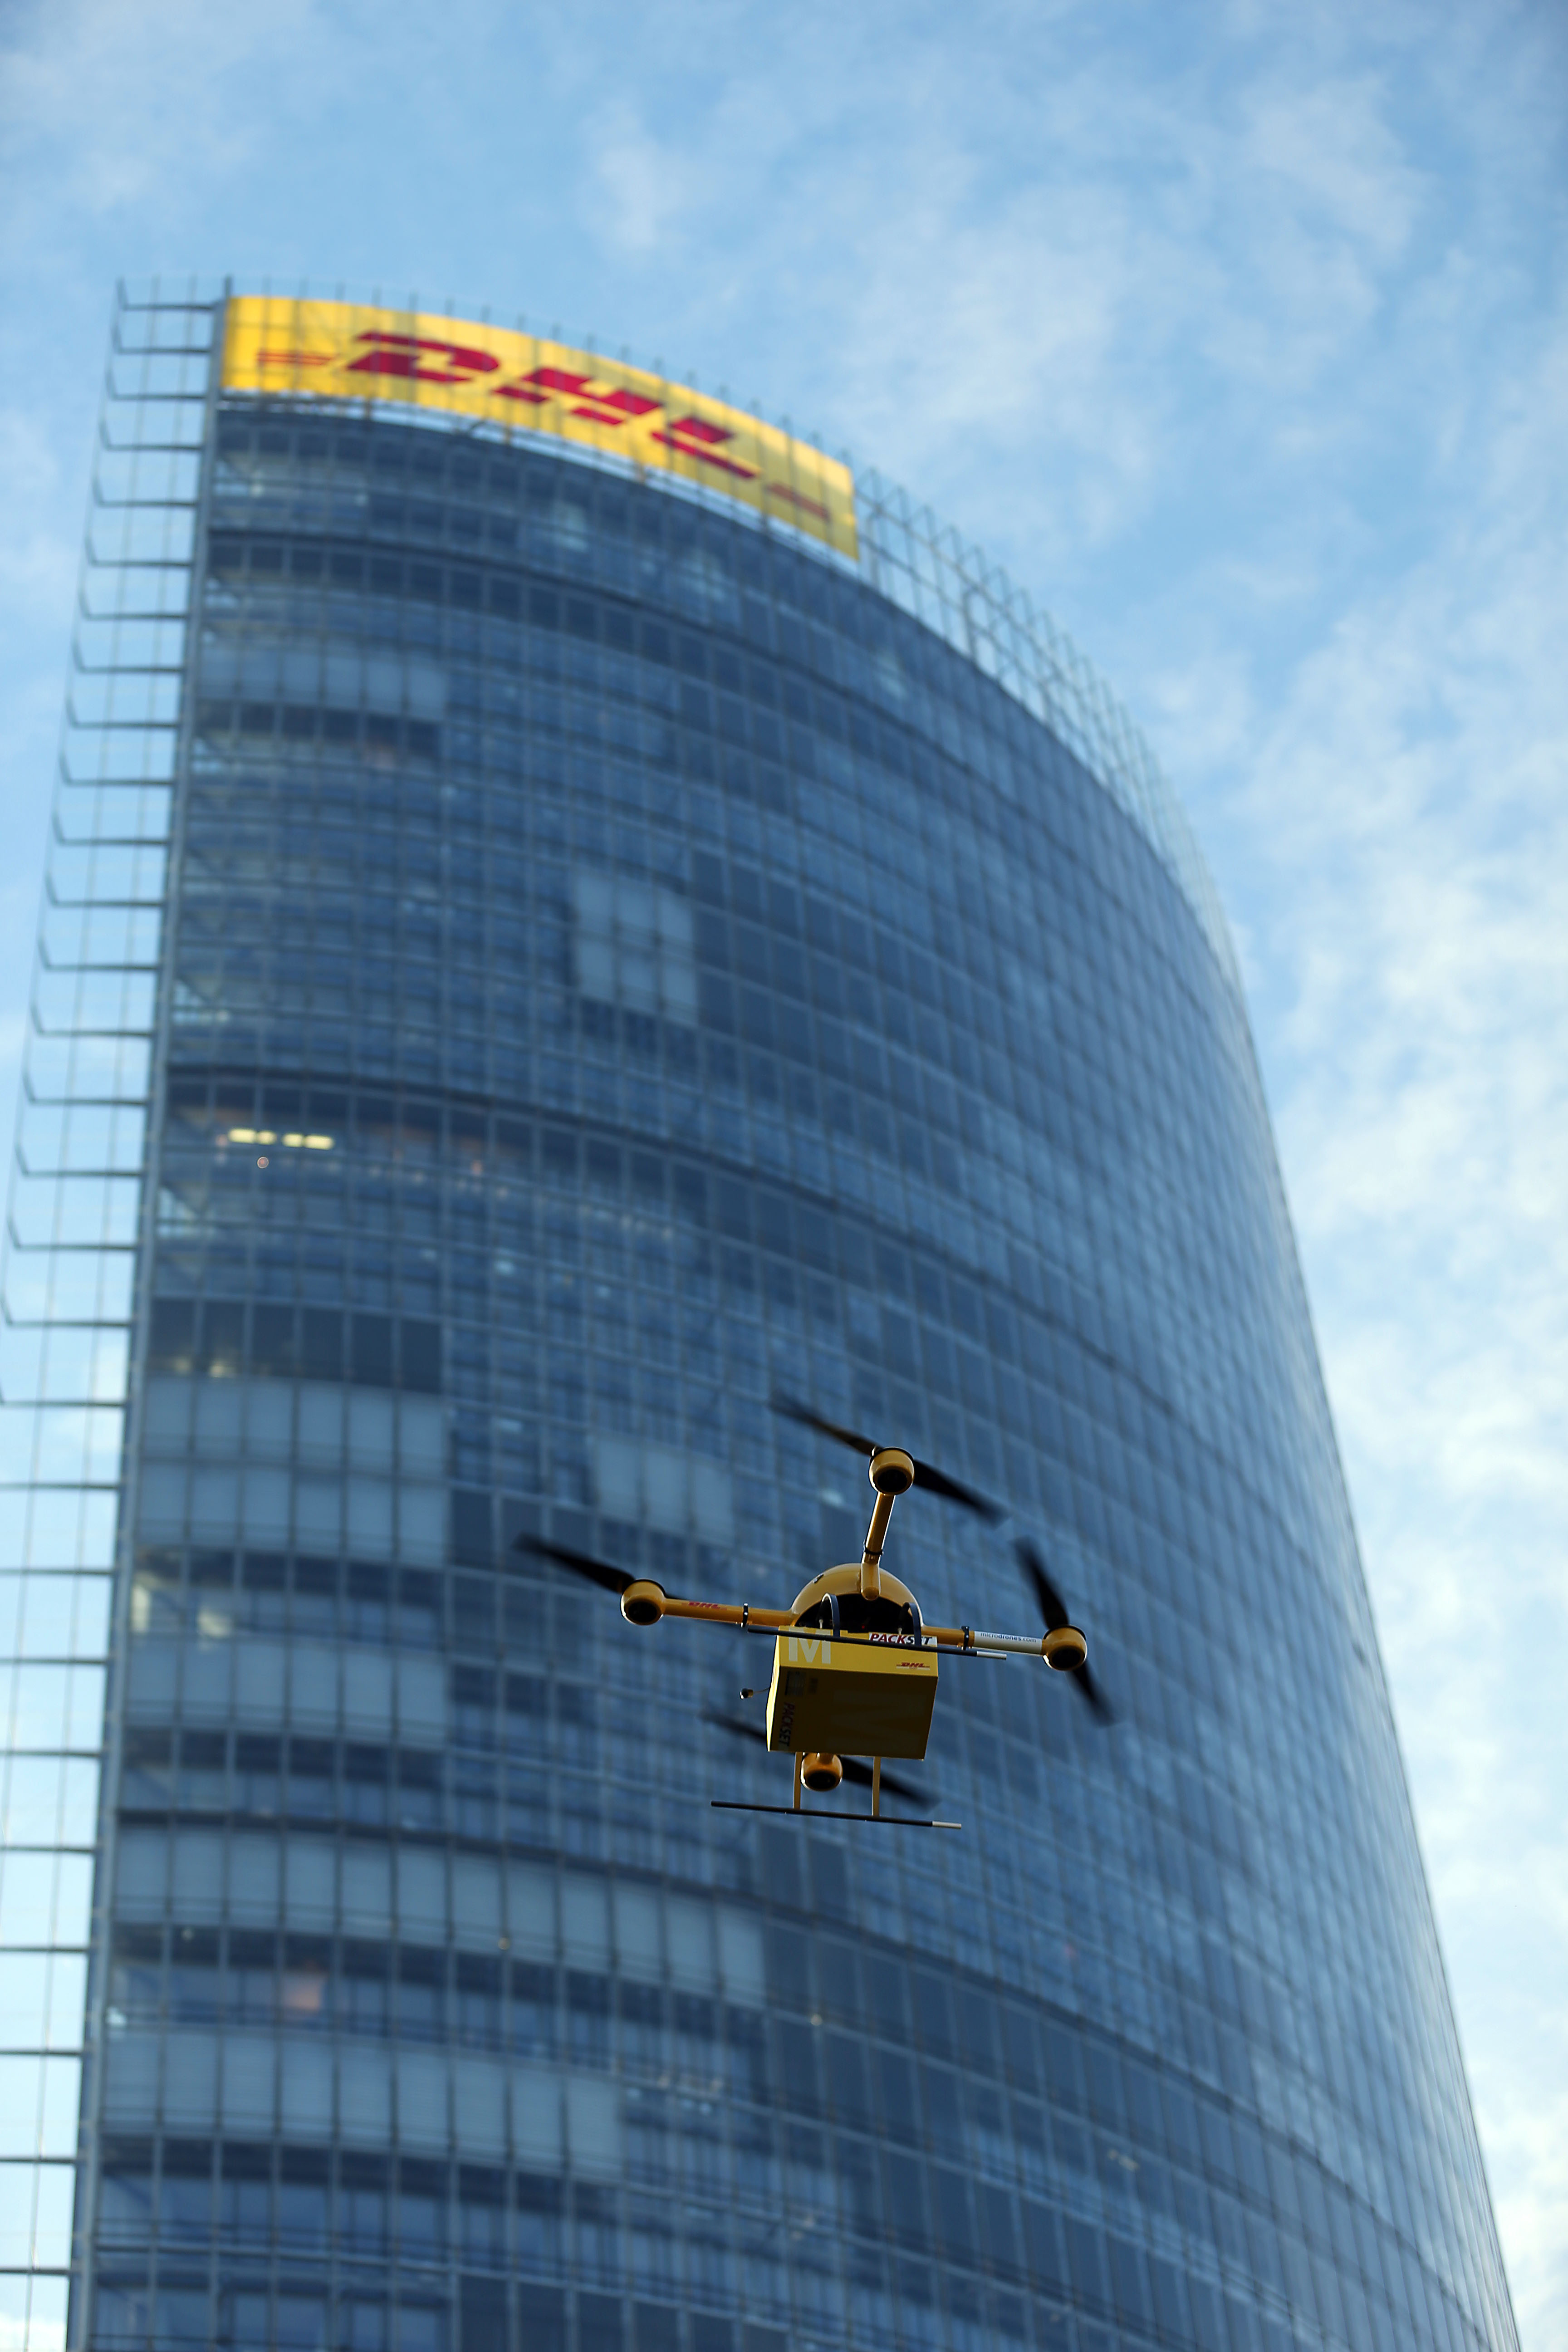 drone deliveries with Frankfurt German Firm Testing Drones To Deliver Goods on The Delivery Drones Are Now Available From Pre Flight also Ups Global Growth 091216 additionally Deploying Drones Self Driving Trucks furthermore Hedonism furthermore Switzerland Swiss Post Ground Robot.